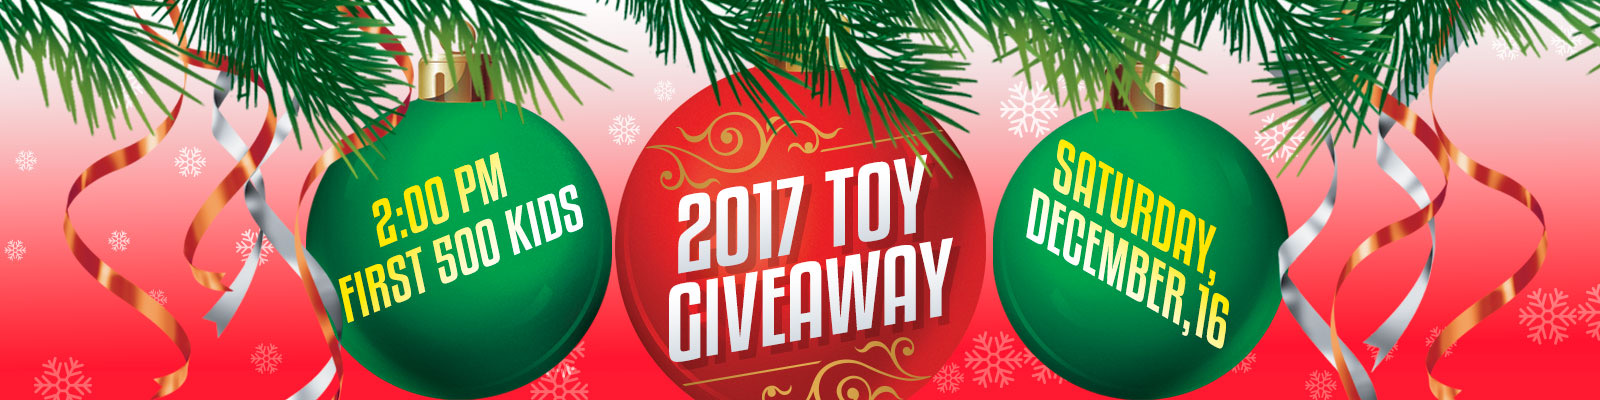 Must ministries christmas toys giveaway